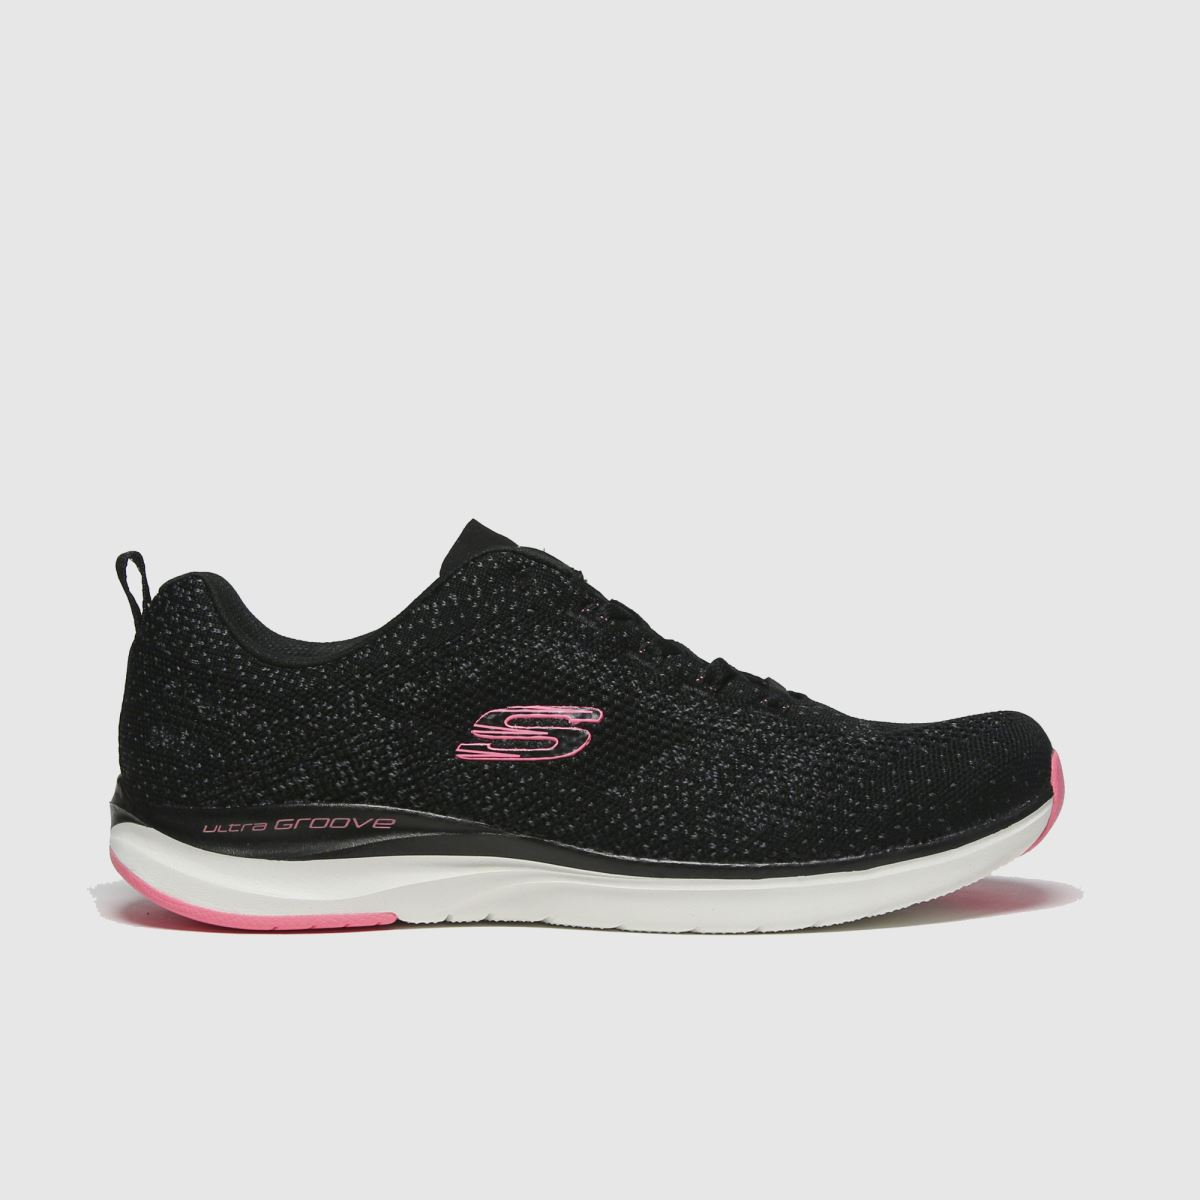 Skechers Black & Pink Ultra Groove Trainers